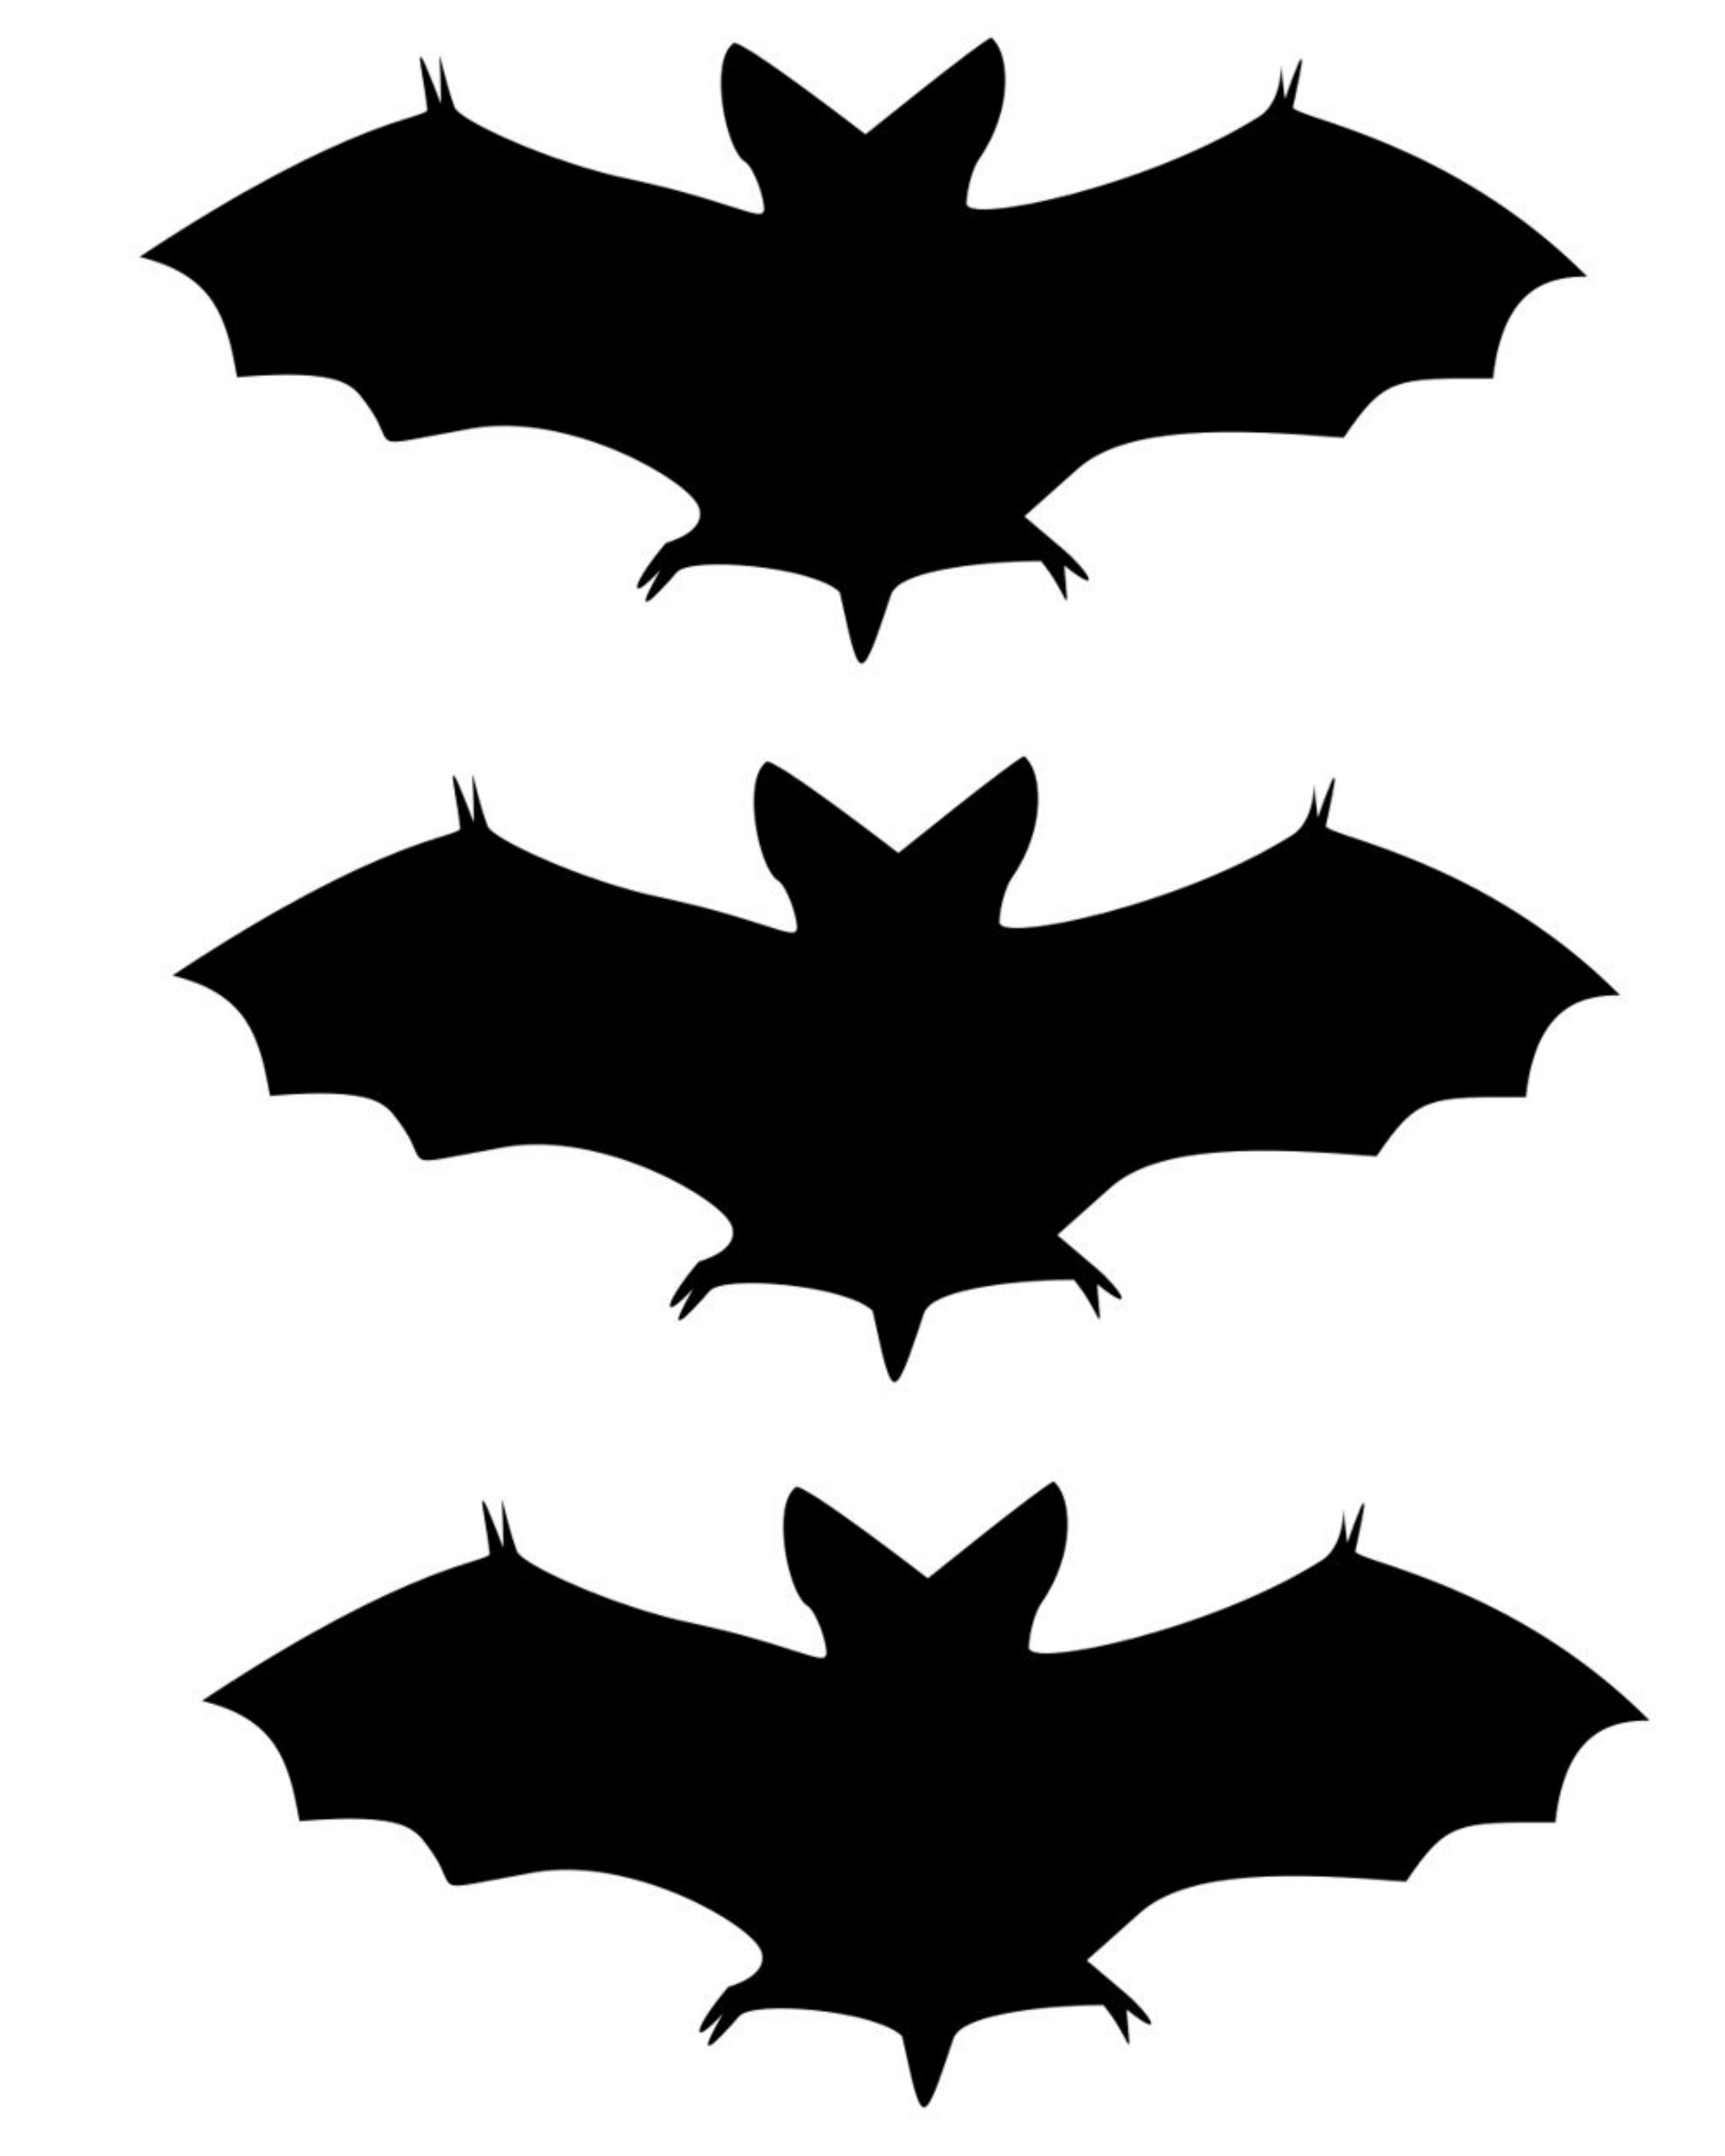 Witty image with printable bat